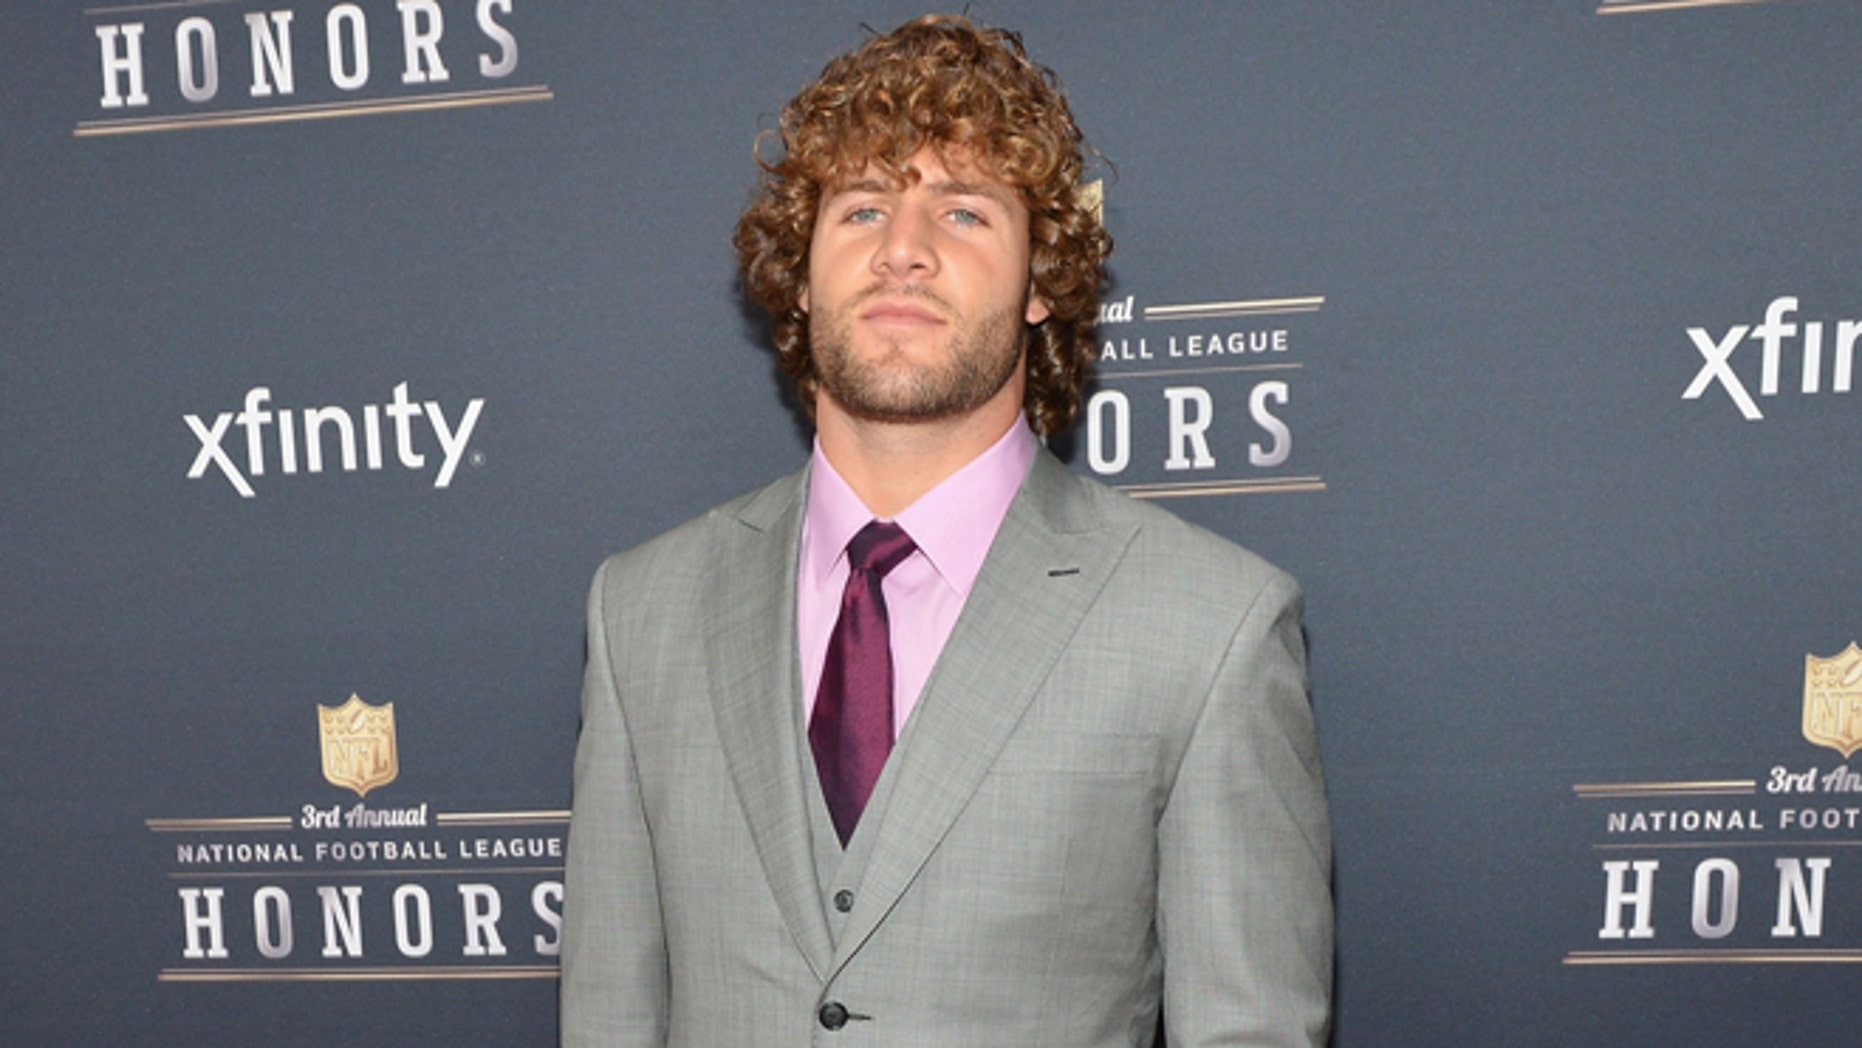 Kiko Alonso attends the 3rd Annual NFL Honors at Radio City Music Hall on February 1, 2014 in New York City.